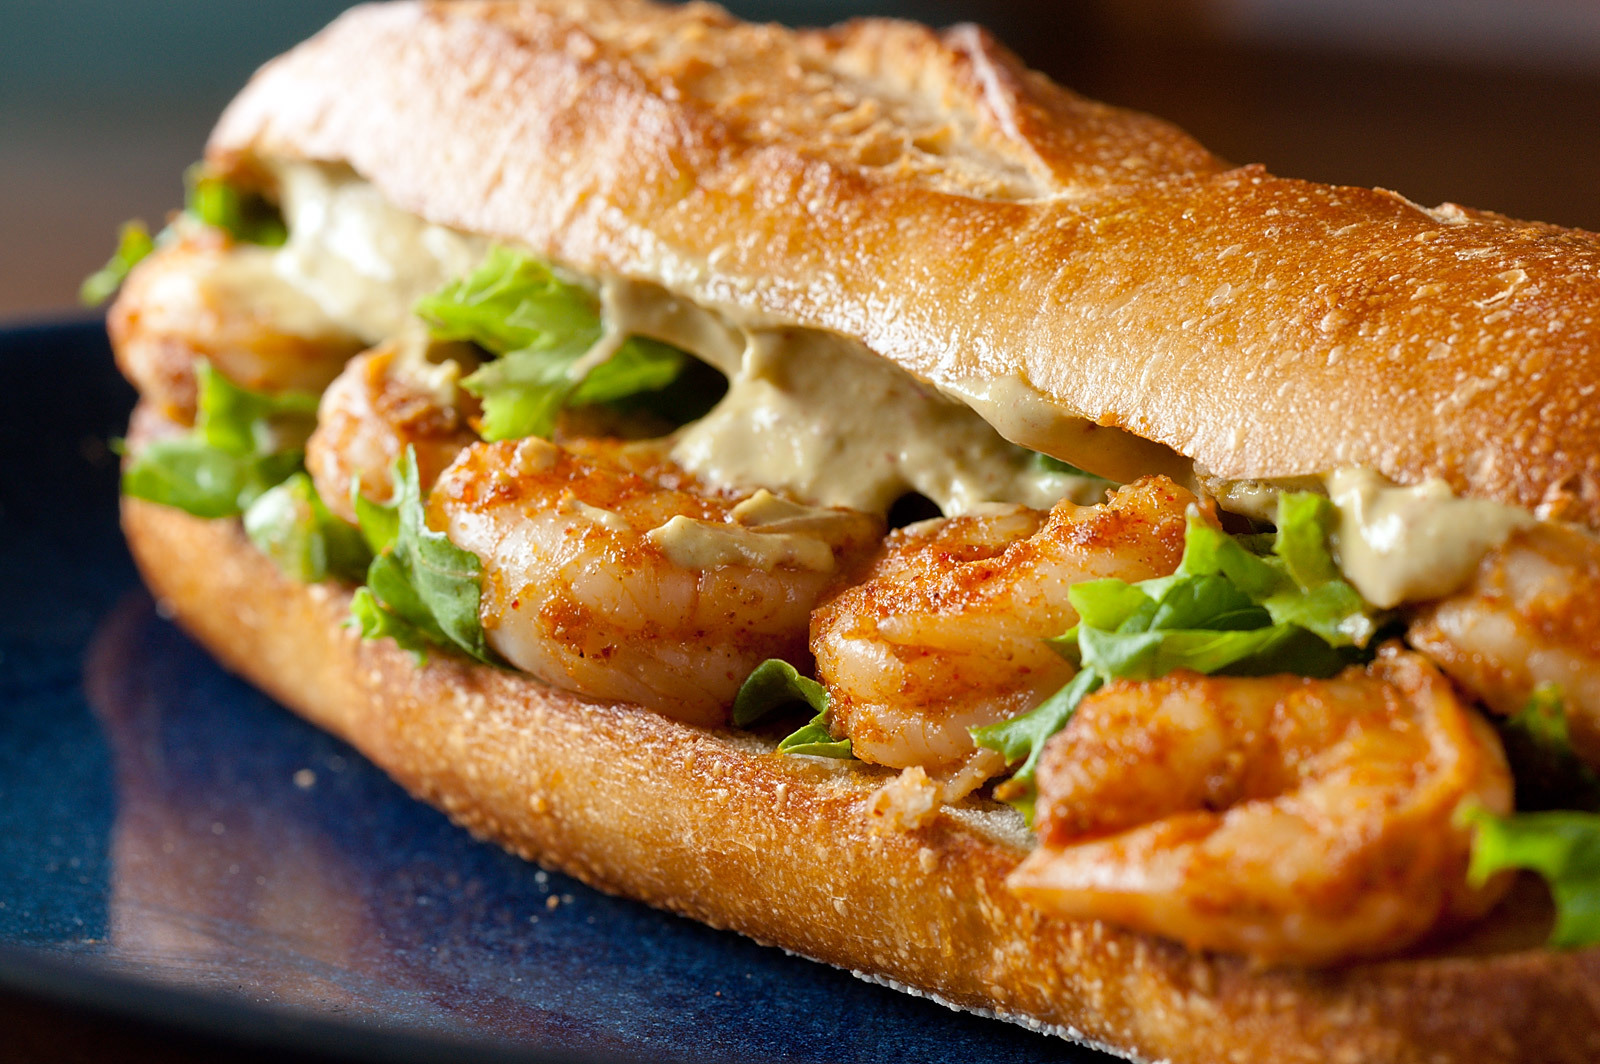 sandwiches shrimps HD Wallpaper